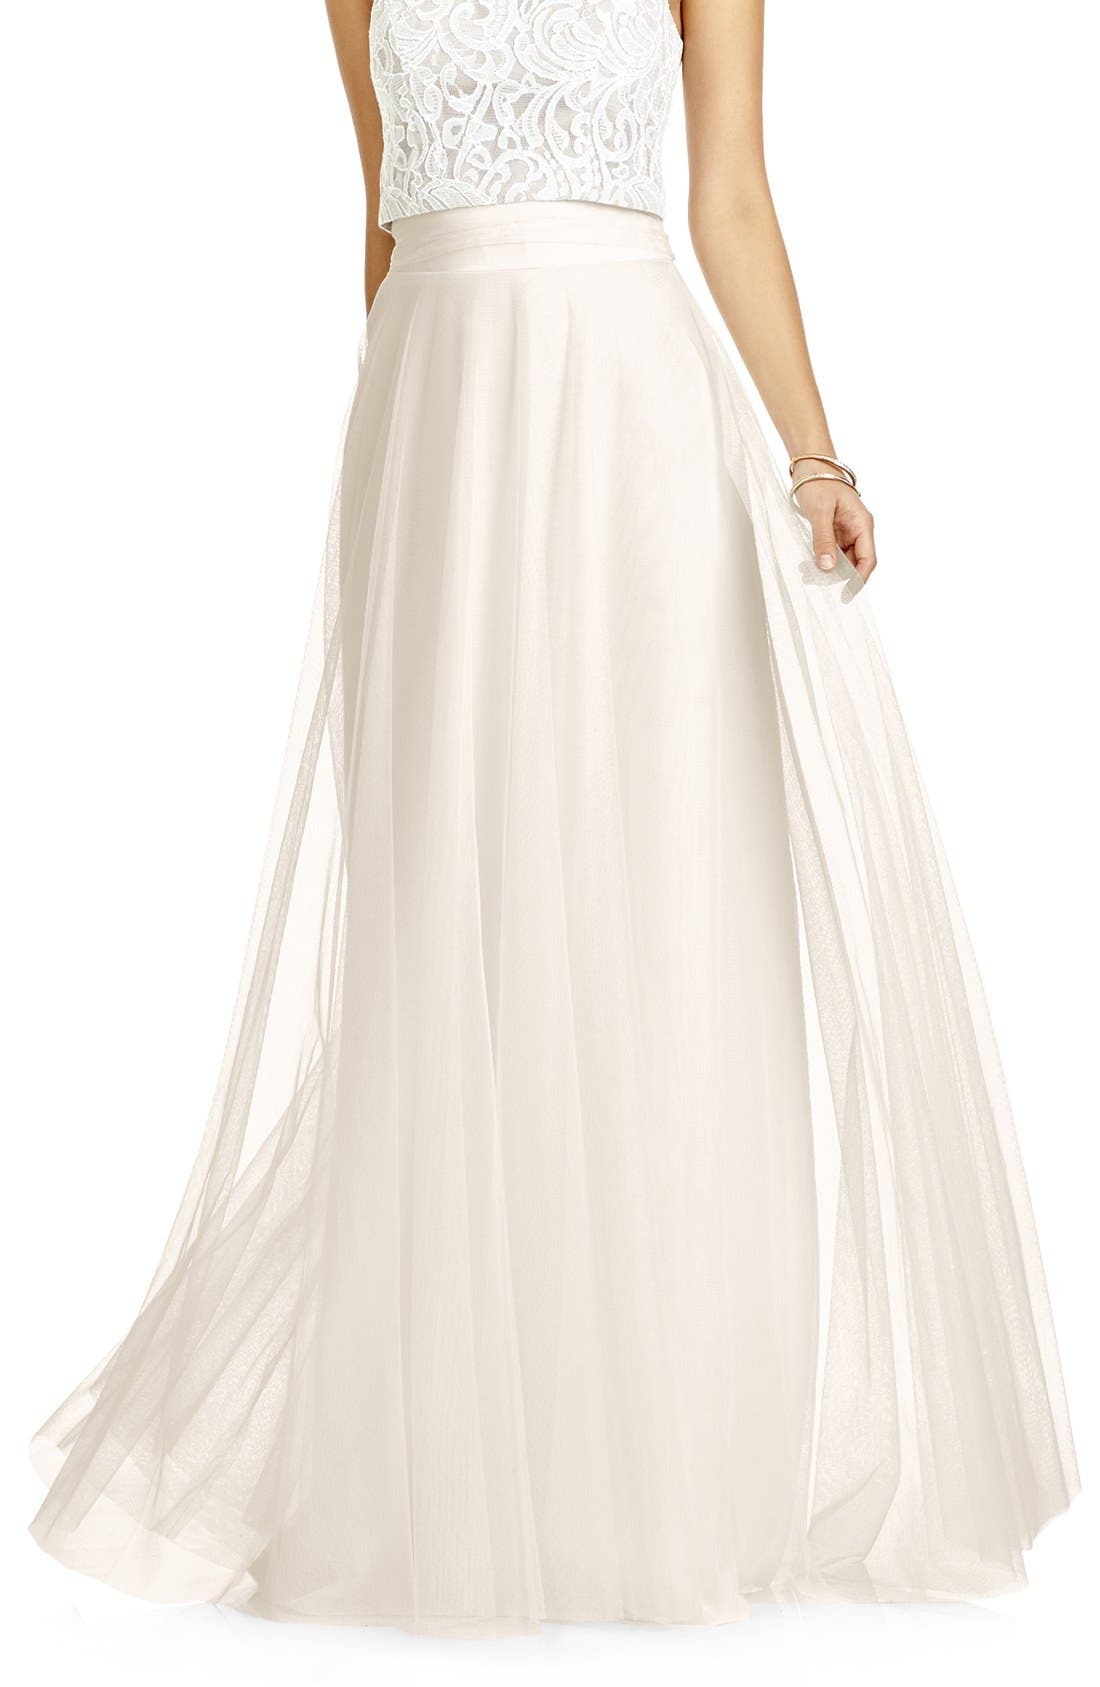 DESSY COLLECTION, Full Length Tulle Skirt, Main thumbnail 1, color, IVORY